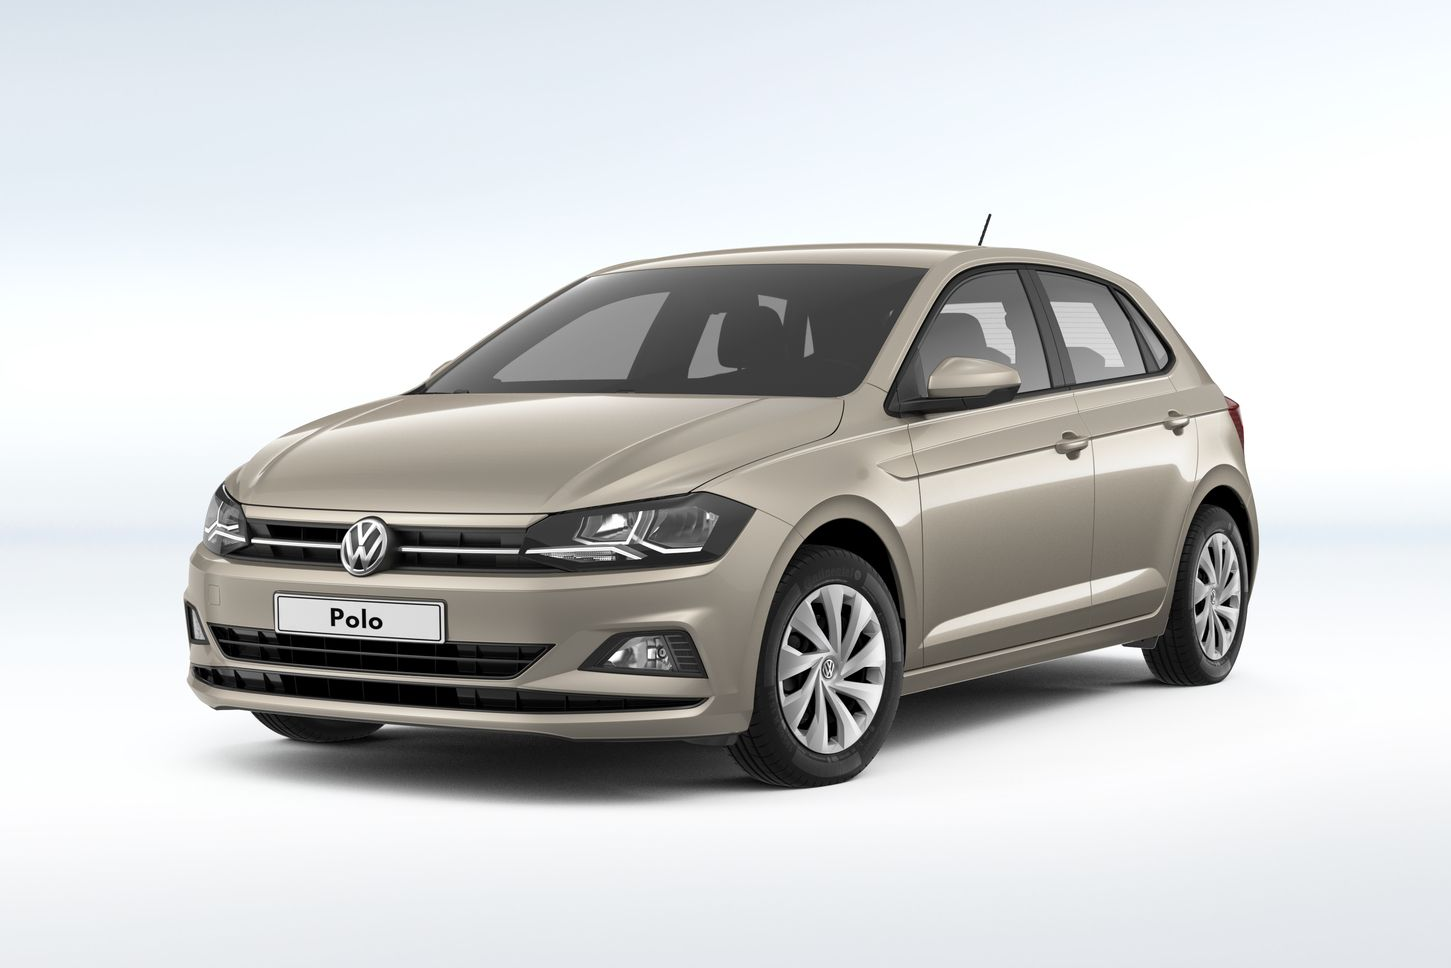 Volkswagen Polo ivorysilver private lease